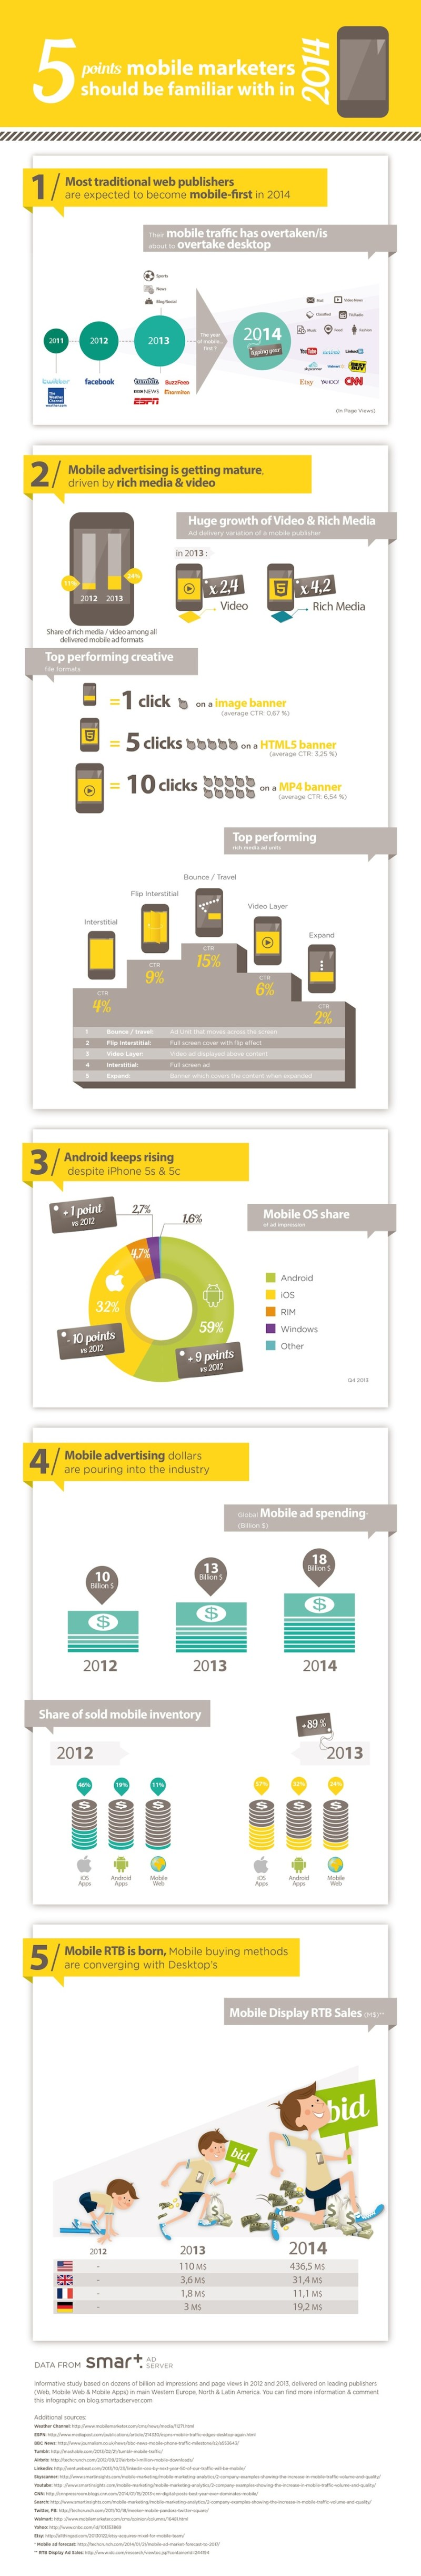 Infographic – 5 Points Mobile Marketers Should Be Familiar With In 2014